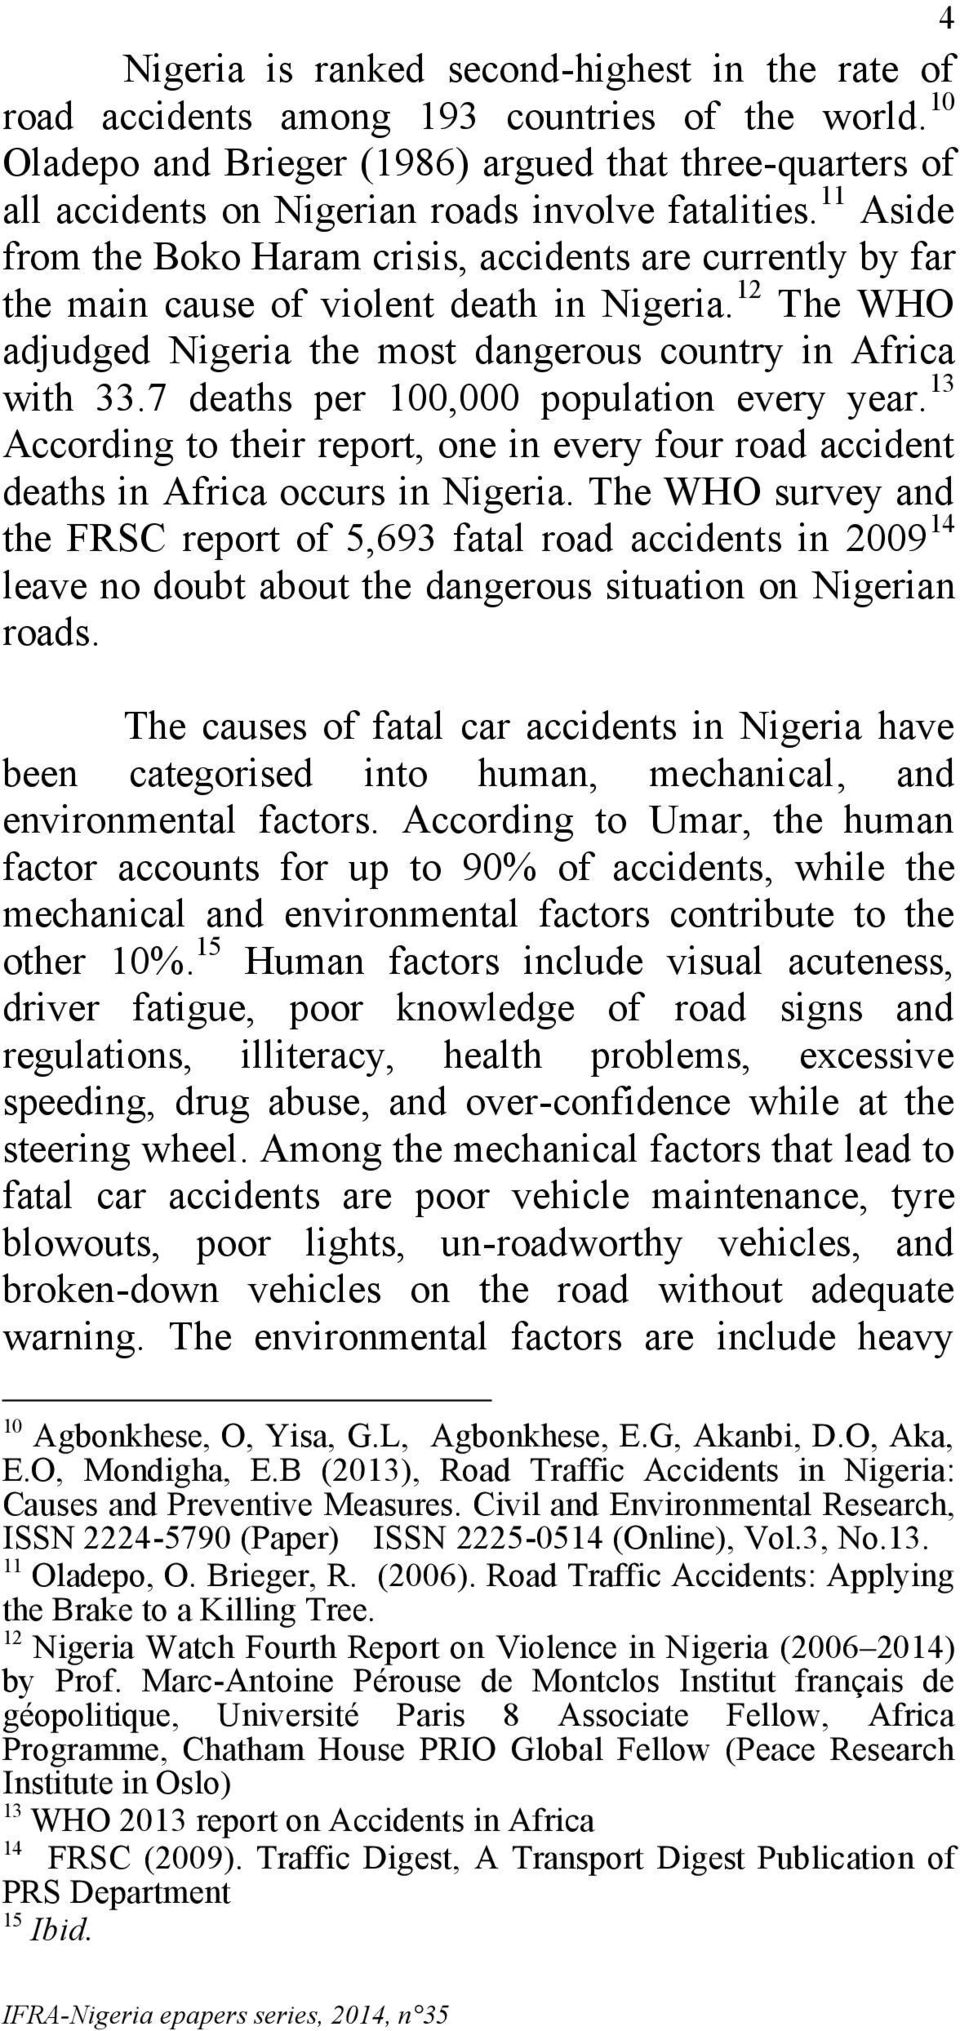 11 Aside from the Boko Haram crisis, accidents are currently by far the main cause of violent death in Nigeria. 12 The WHO adjudged Nigeria the most dangerous country in Africa with 33.